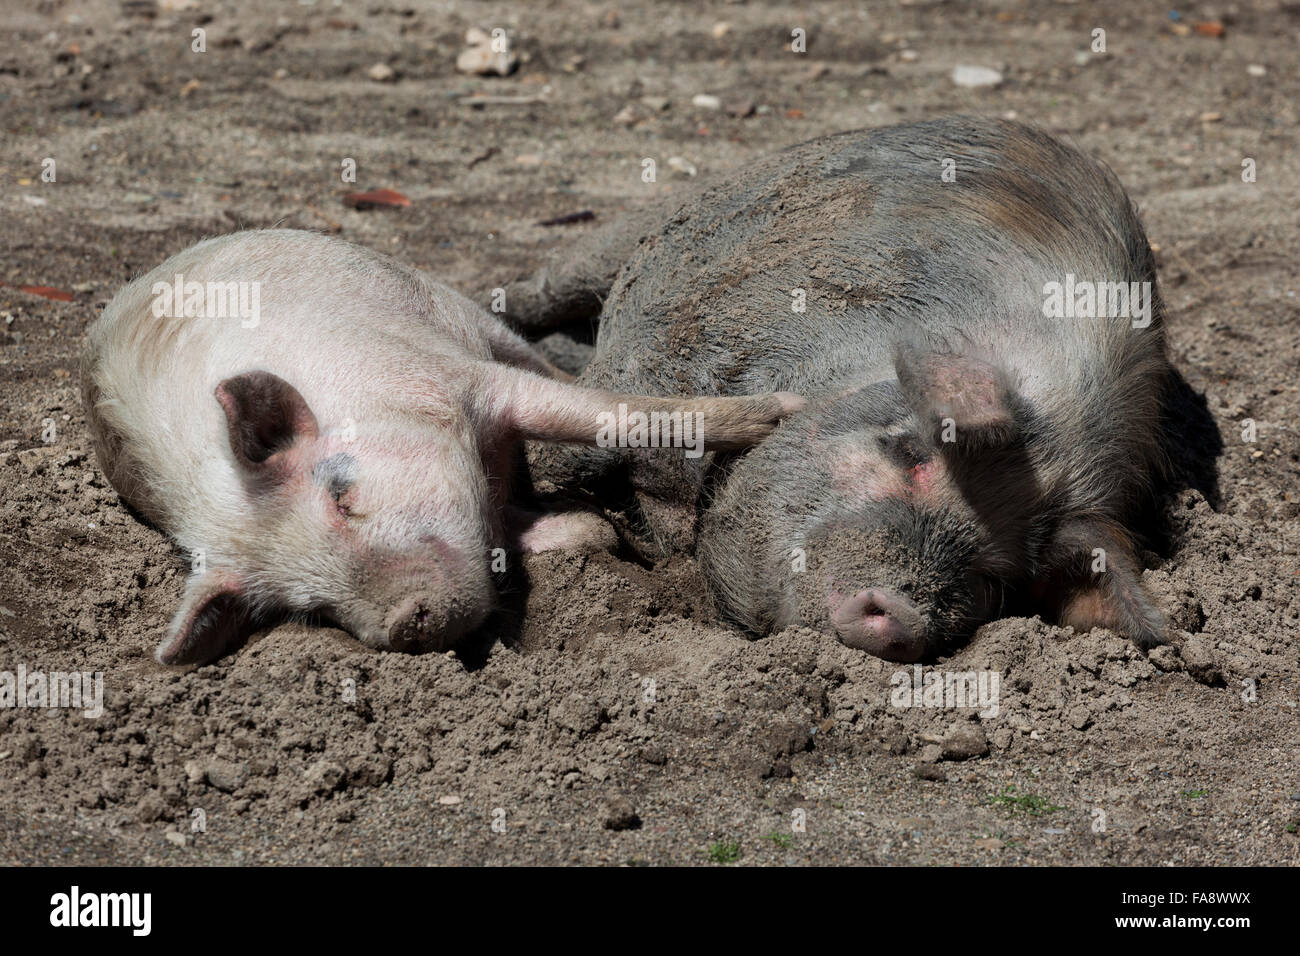 pigs-in-love-domestic-pigs-sus-scrofa-do